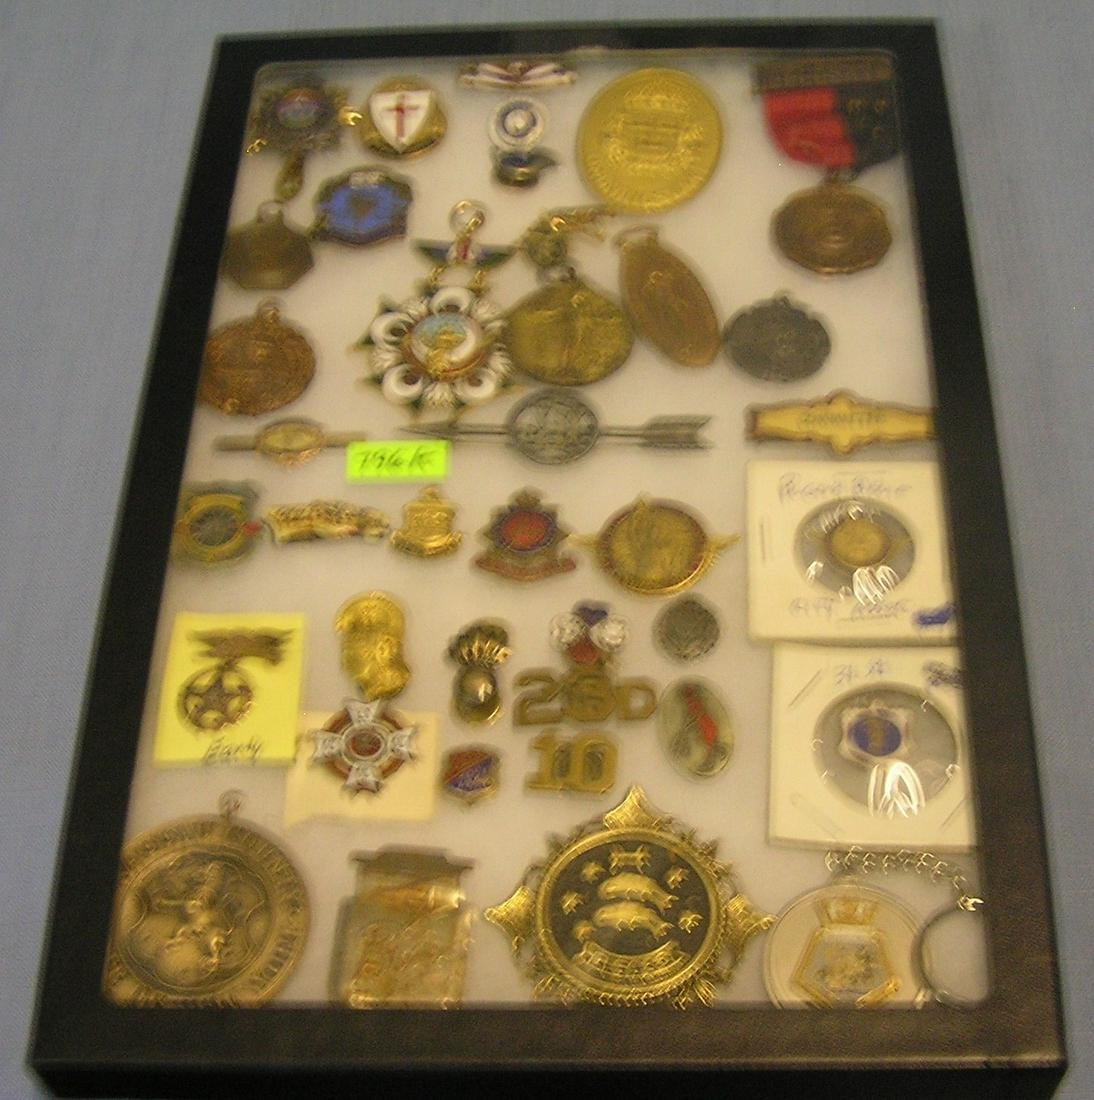 Early medals, badges, pins, awards and more